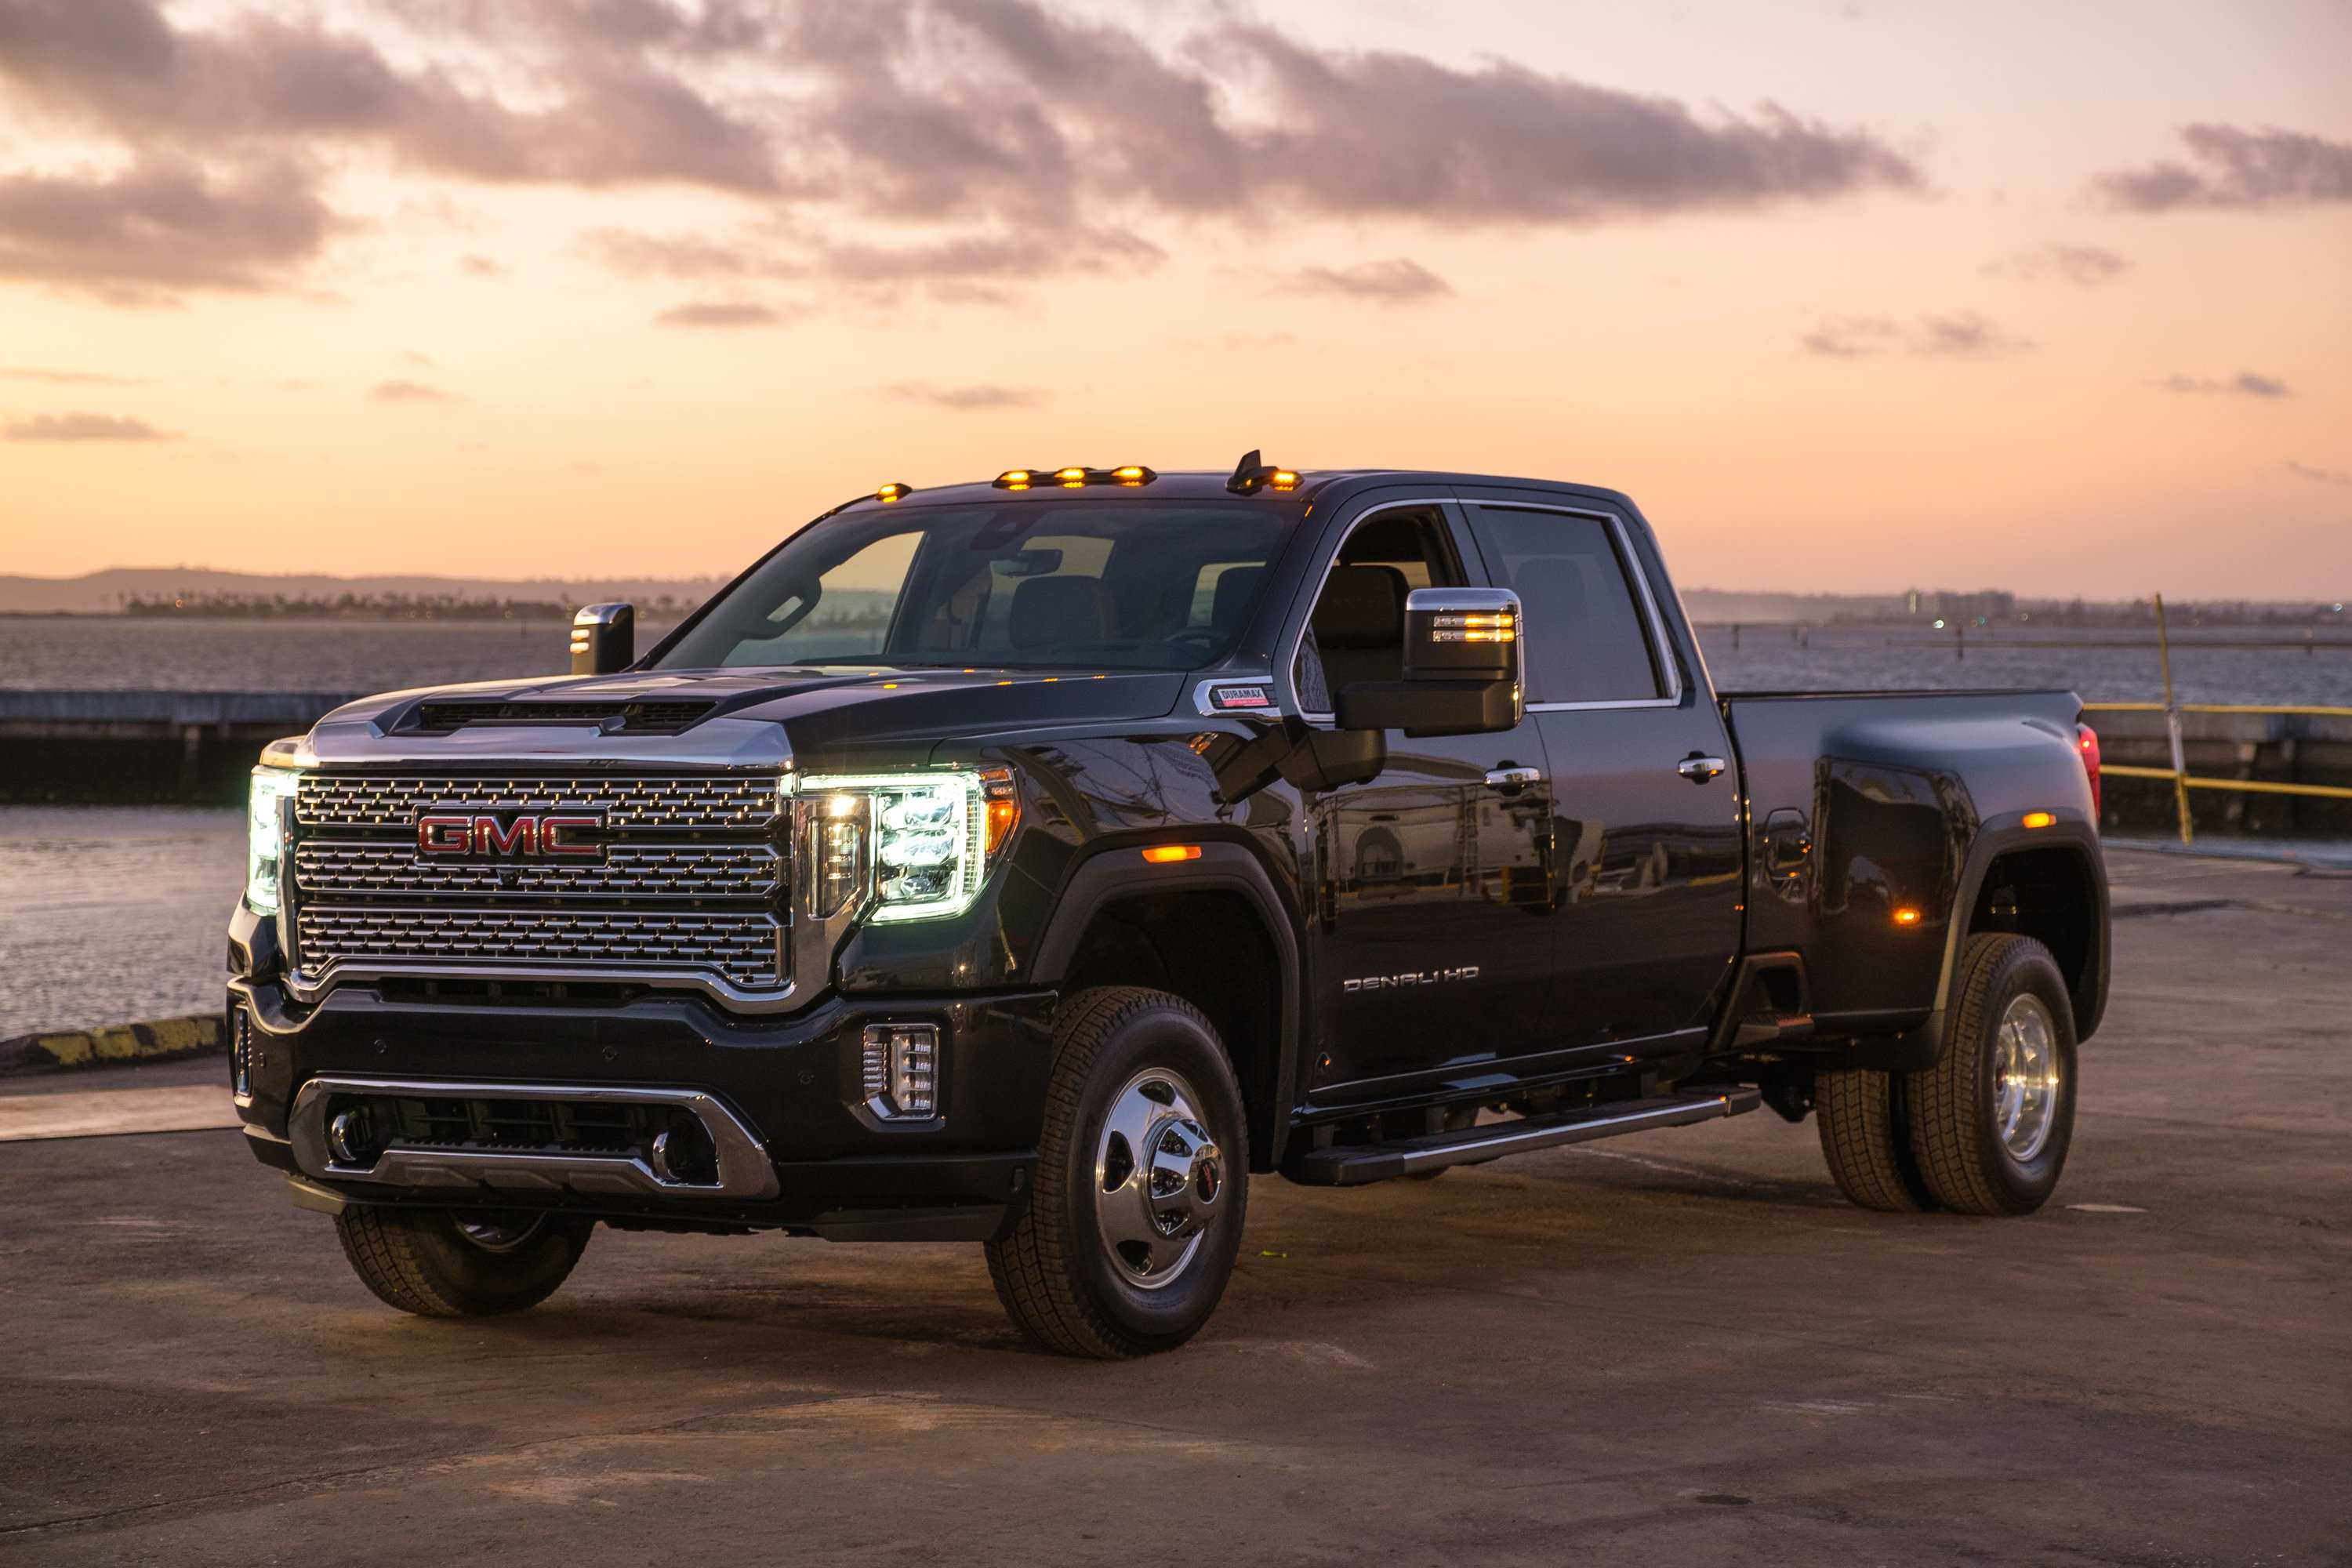 63 Concept of 2020 Gmc 2500 Lifted Configurations for 2020 Gmc 2500 Lifted